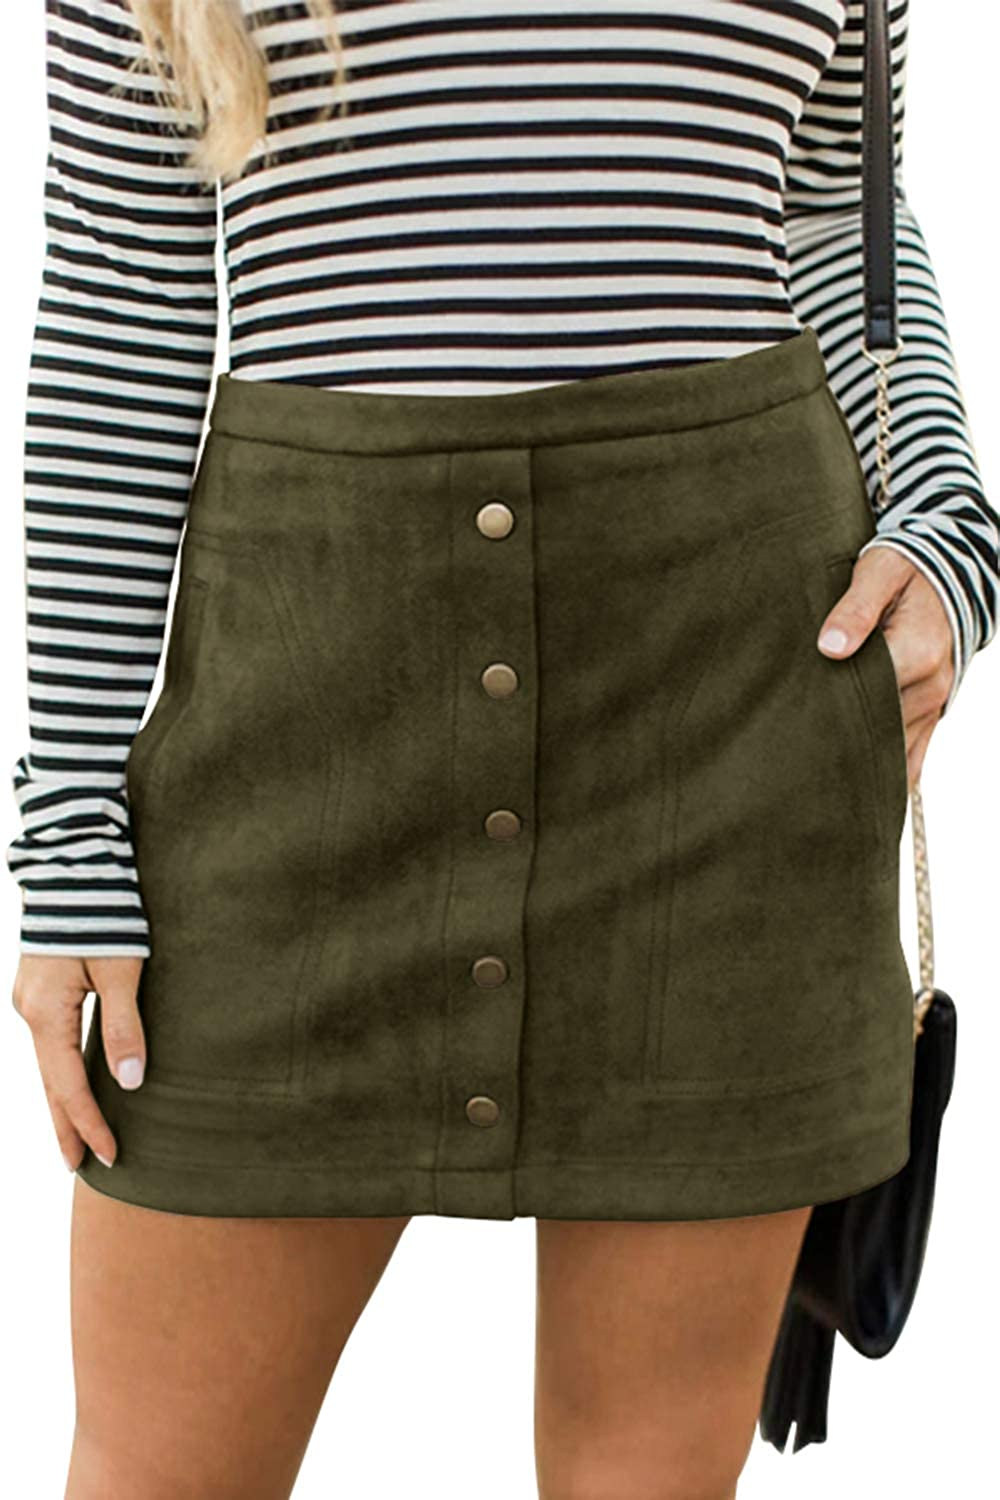 1a534a6cf Meyeeka Women's Button Front Faux Suede High Waist A-line Mini Skirt with  Pocket at Amazon Women's Clothing store: